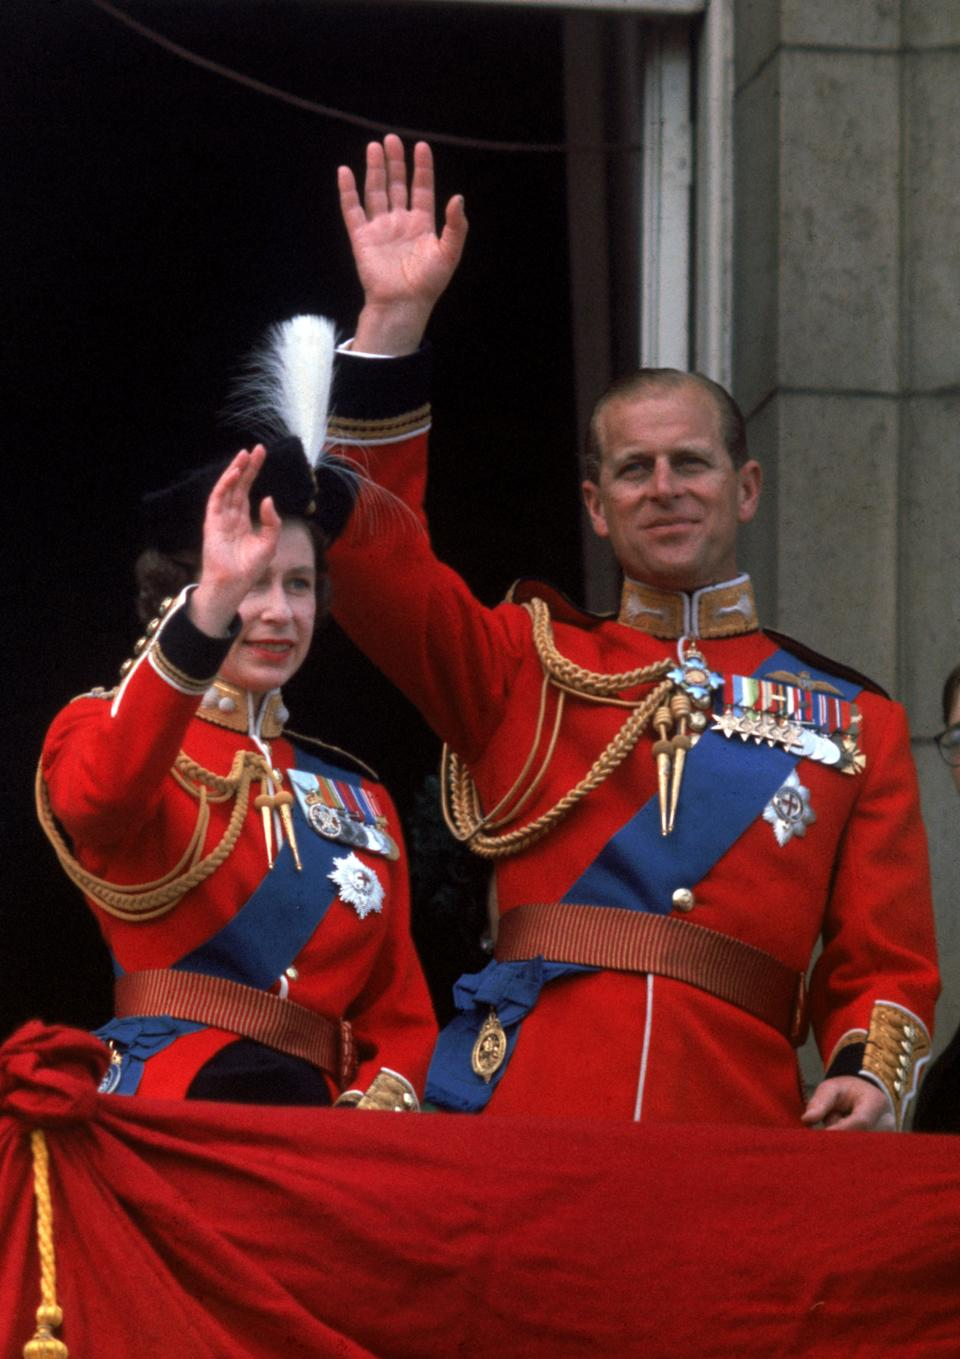 Waving from the balcony of Buckingham Palace during Trooping the Colour. [Photo: Getty]